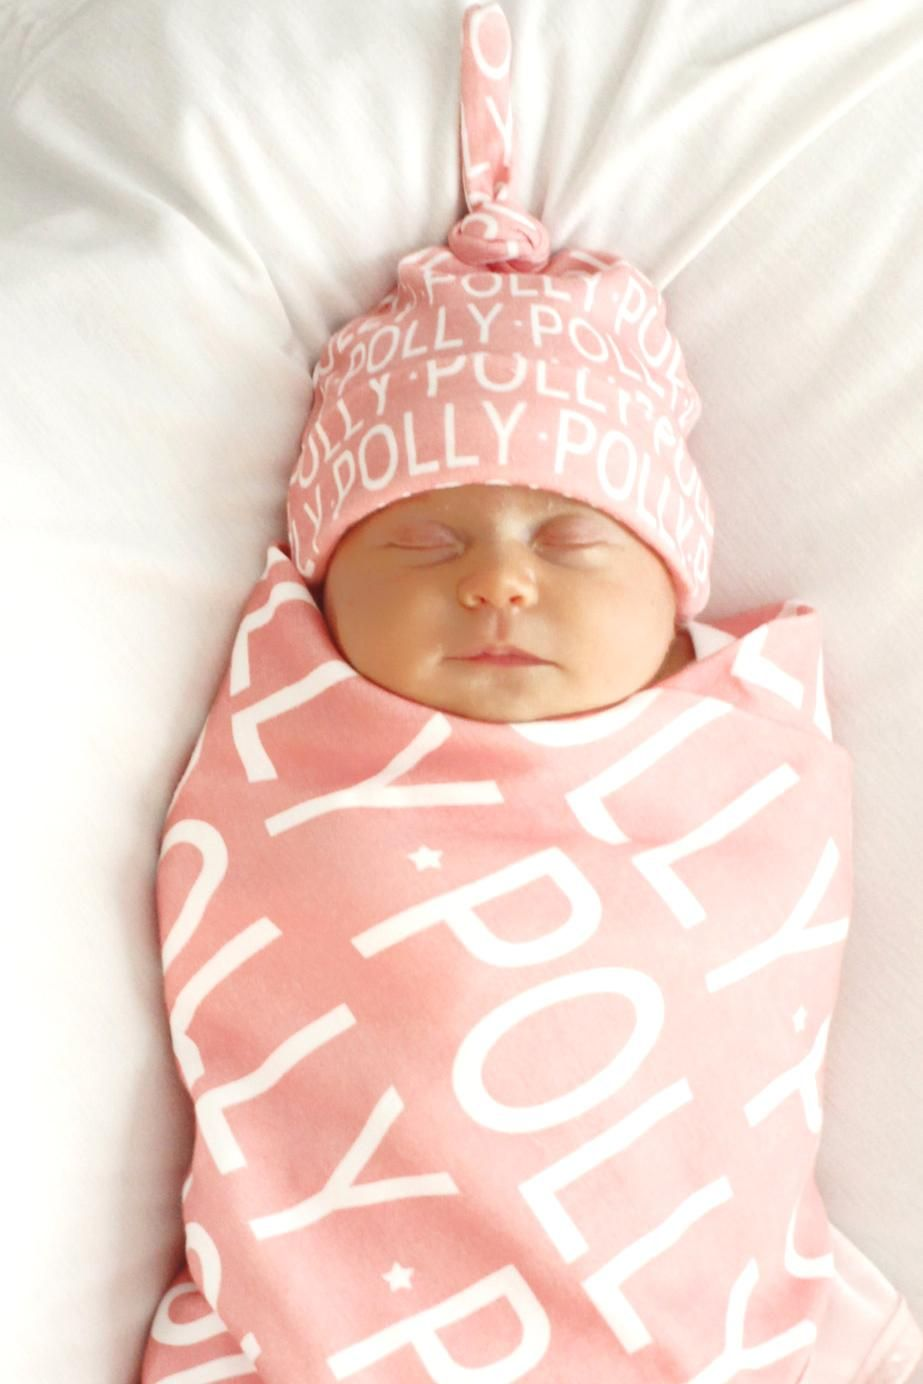 Wrapped up in a name so sweet etsy kids pinterest wraps personalized baby blanket hat set organic twins multiples knot hat name hipster swaddle newborn photo prop gift birth announcement monogram negle